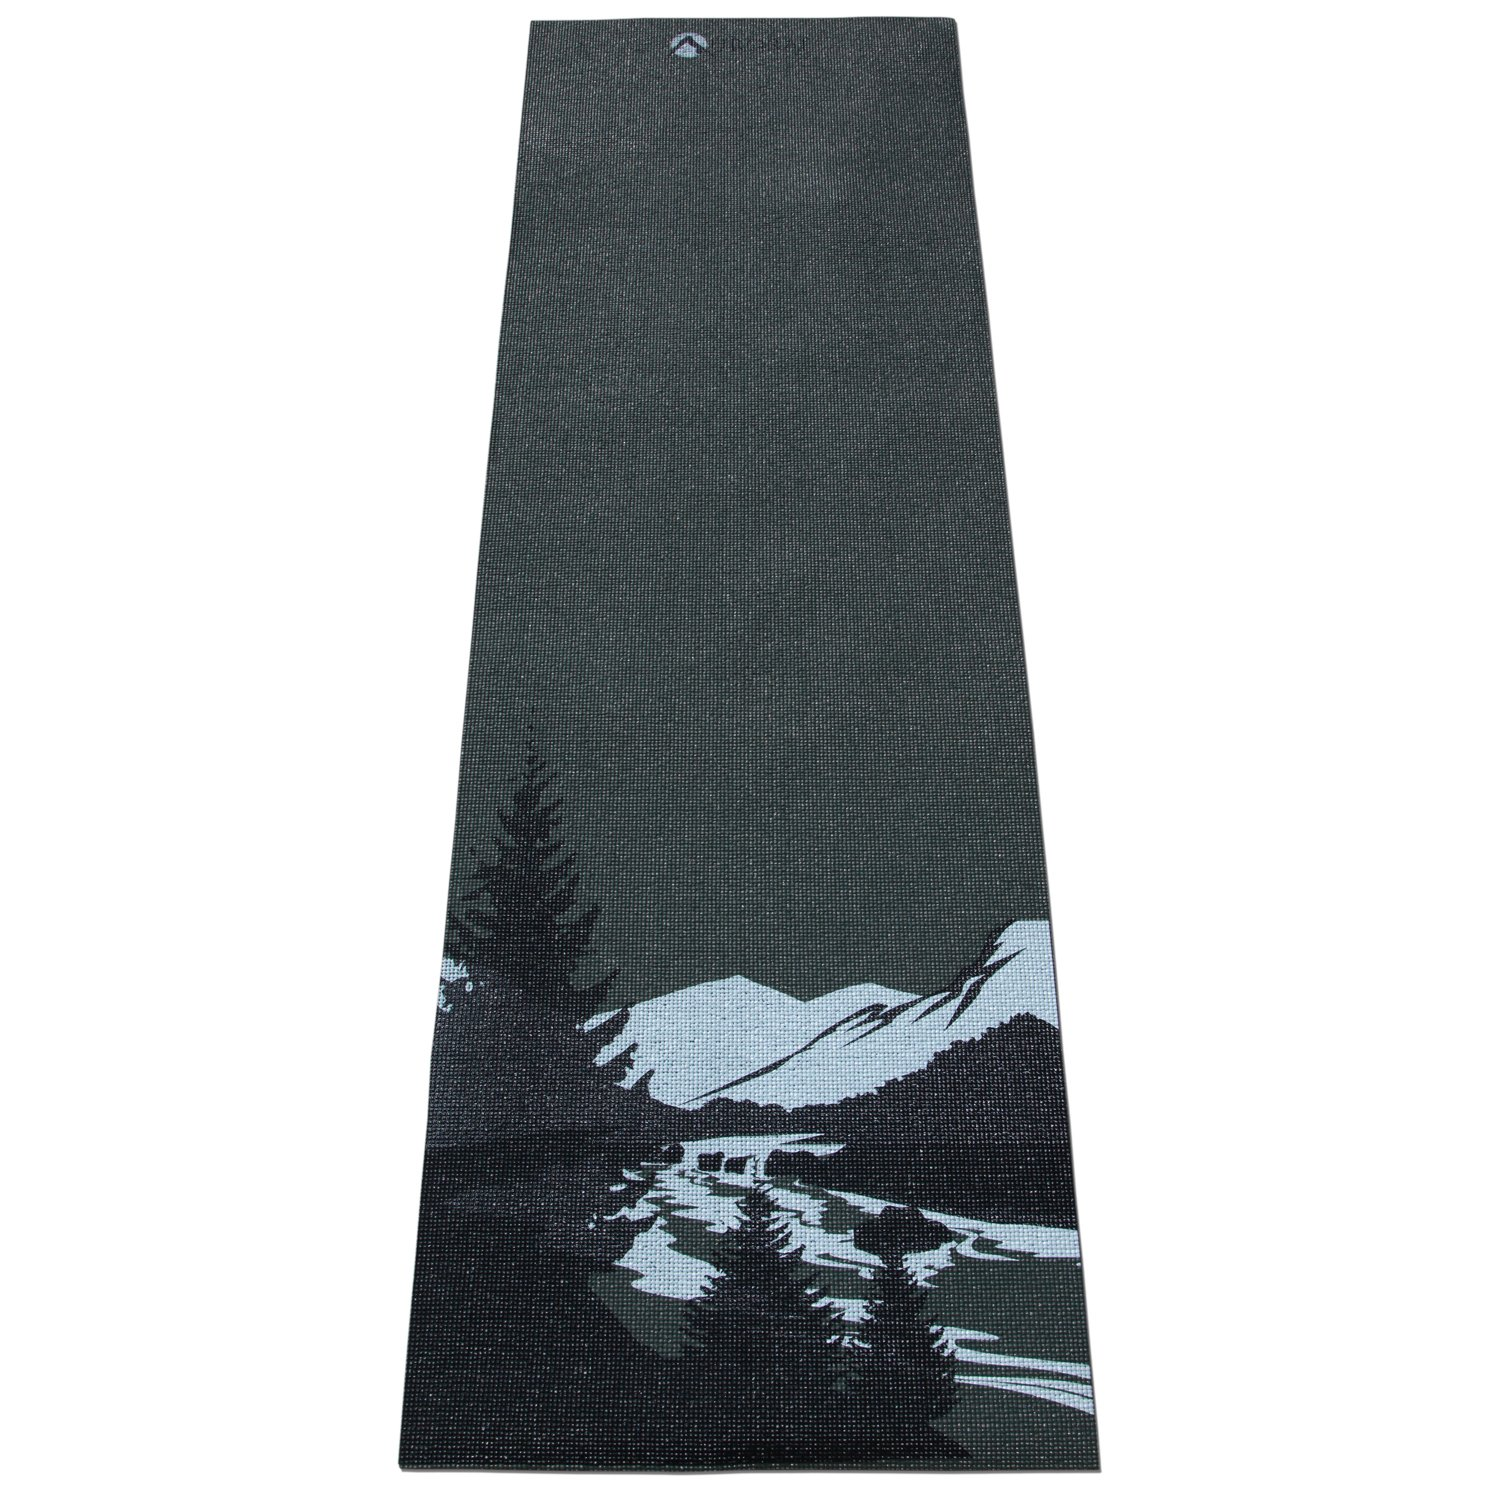 Aurorae Classic Printed Extra Thick and Long 72 Premium Eco Safe Yoga Mat with Non Slip Rosin Included